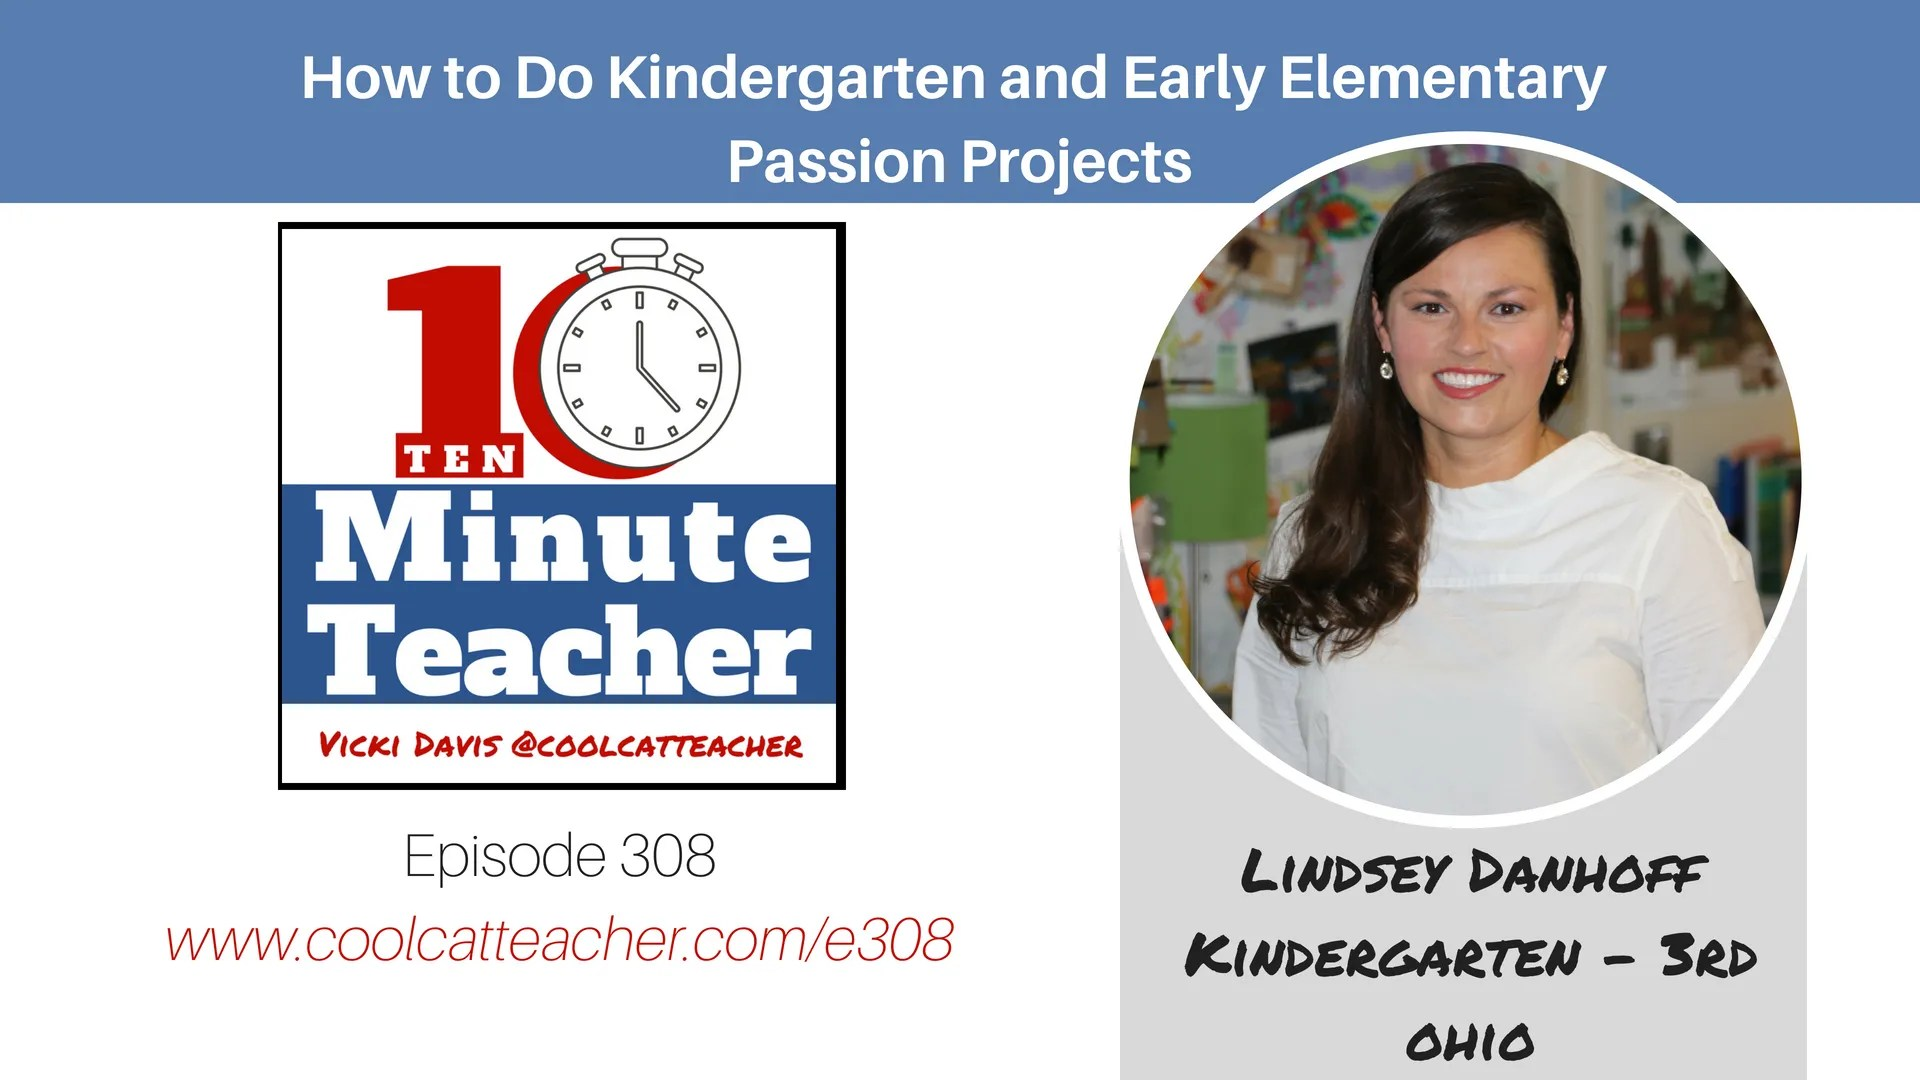 How to Do Passion Projects in Kindergarten and Early Elementary